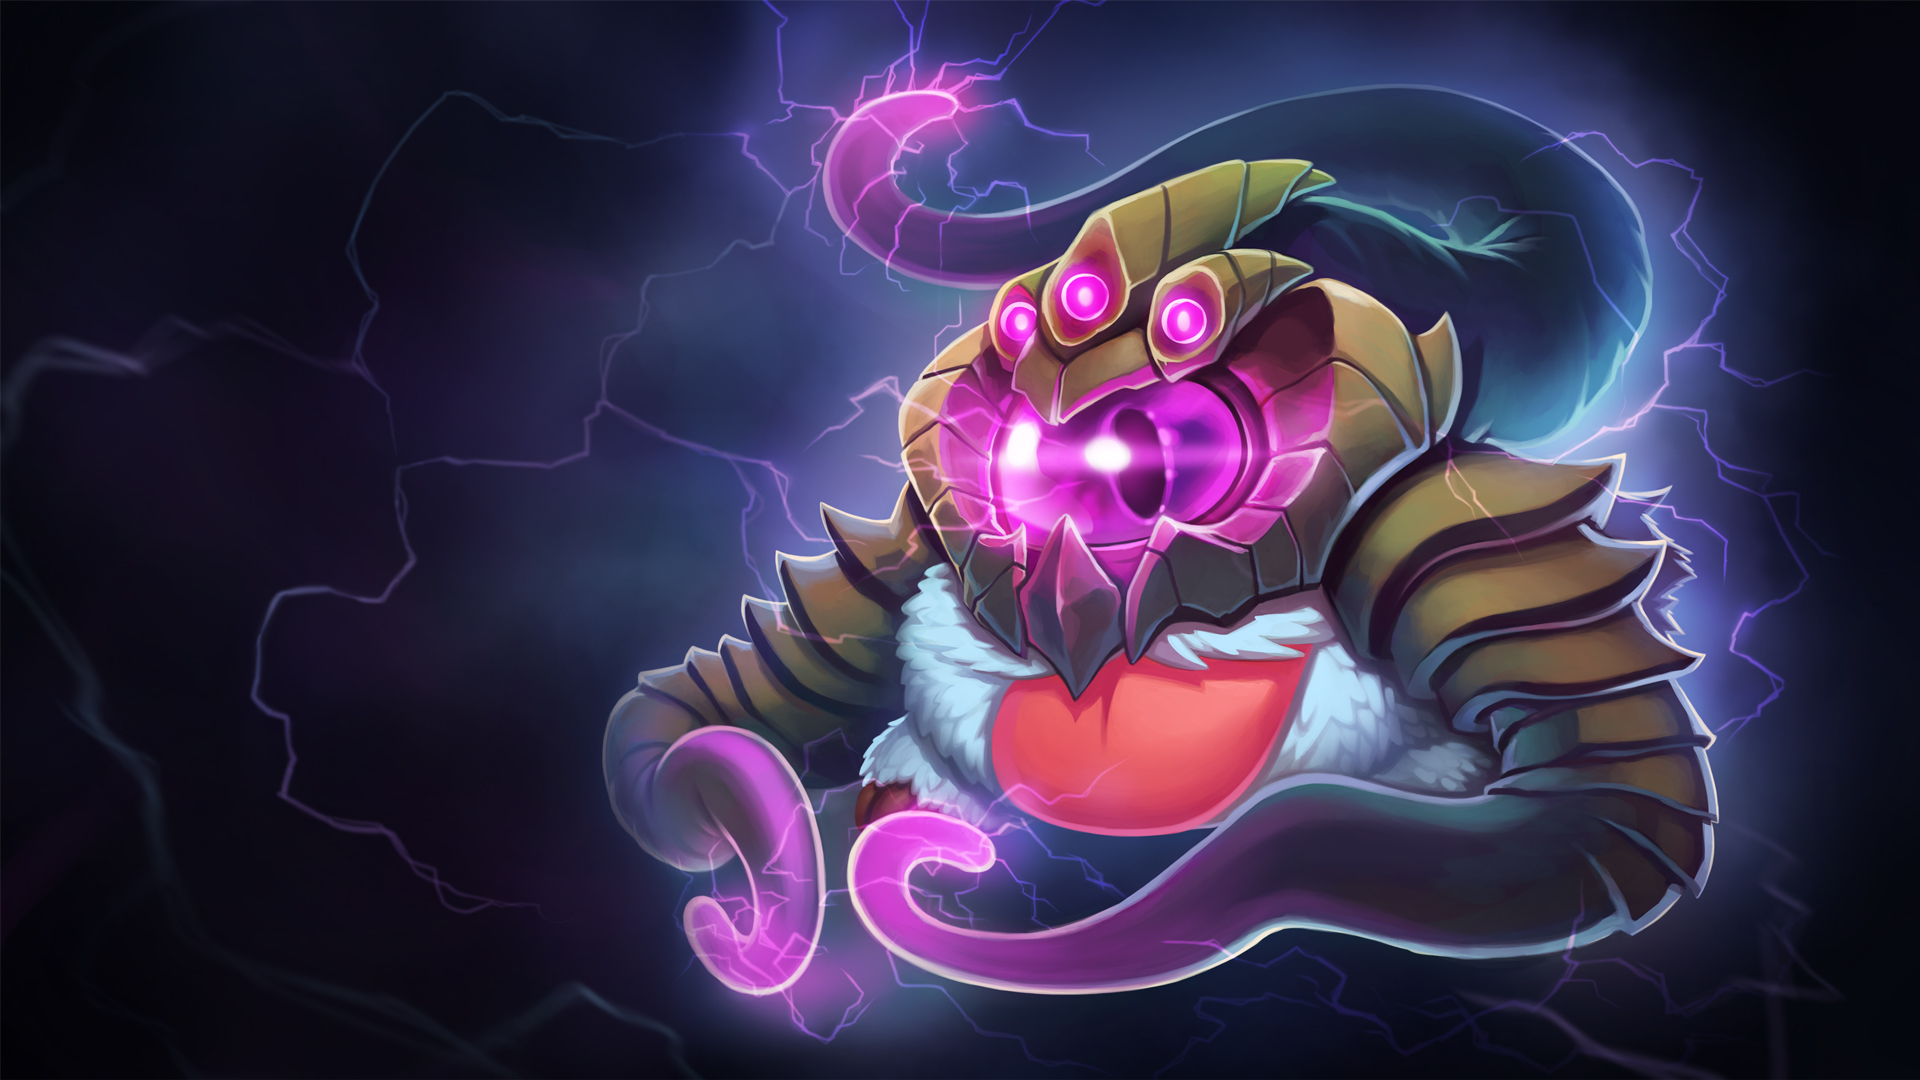 Free Download League Of Legends Poro Wallpaper 18 1920x1080 For